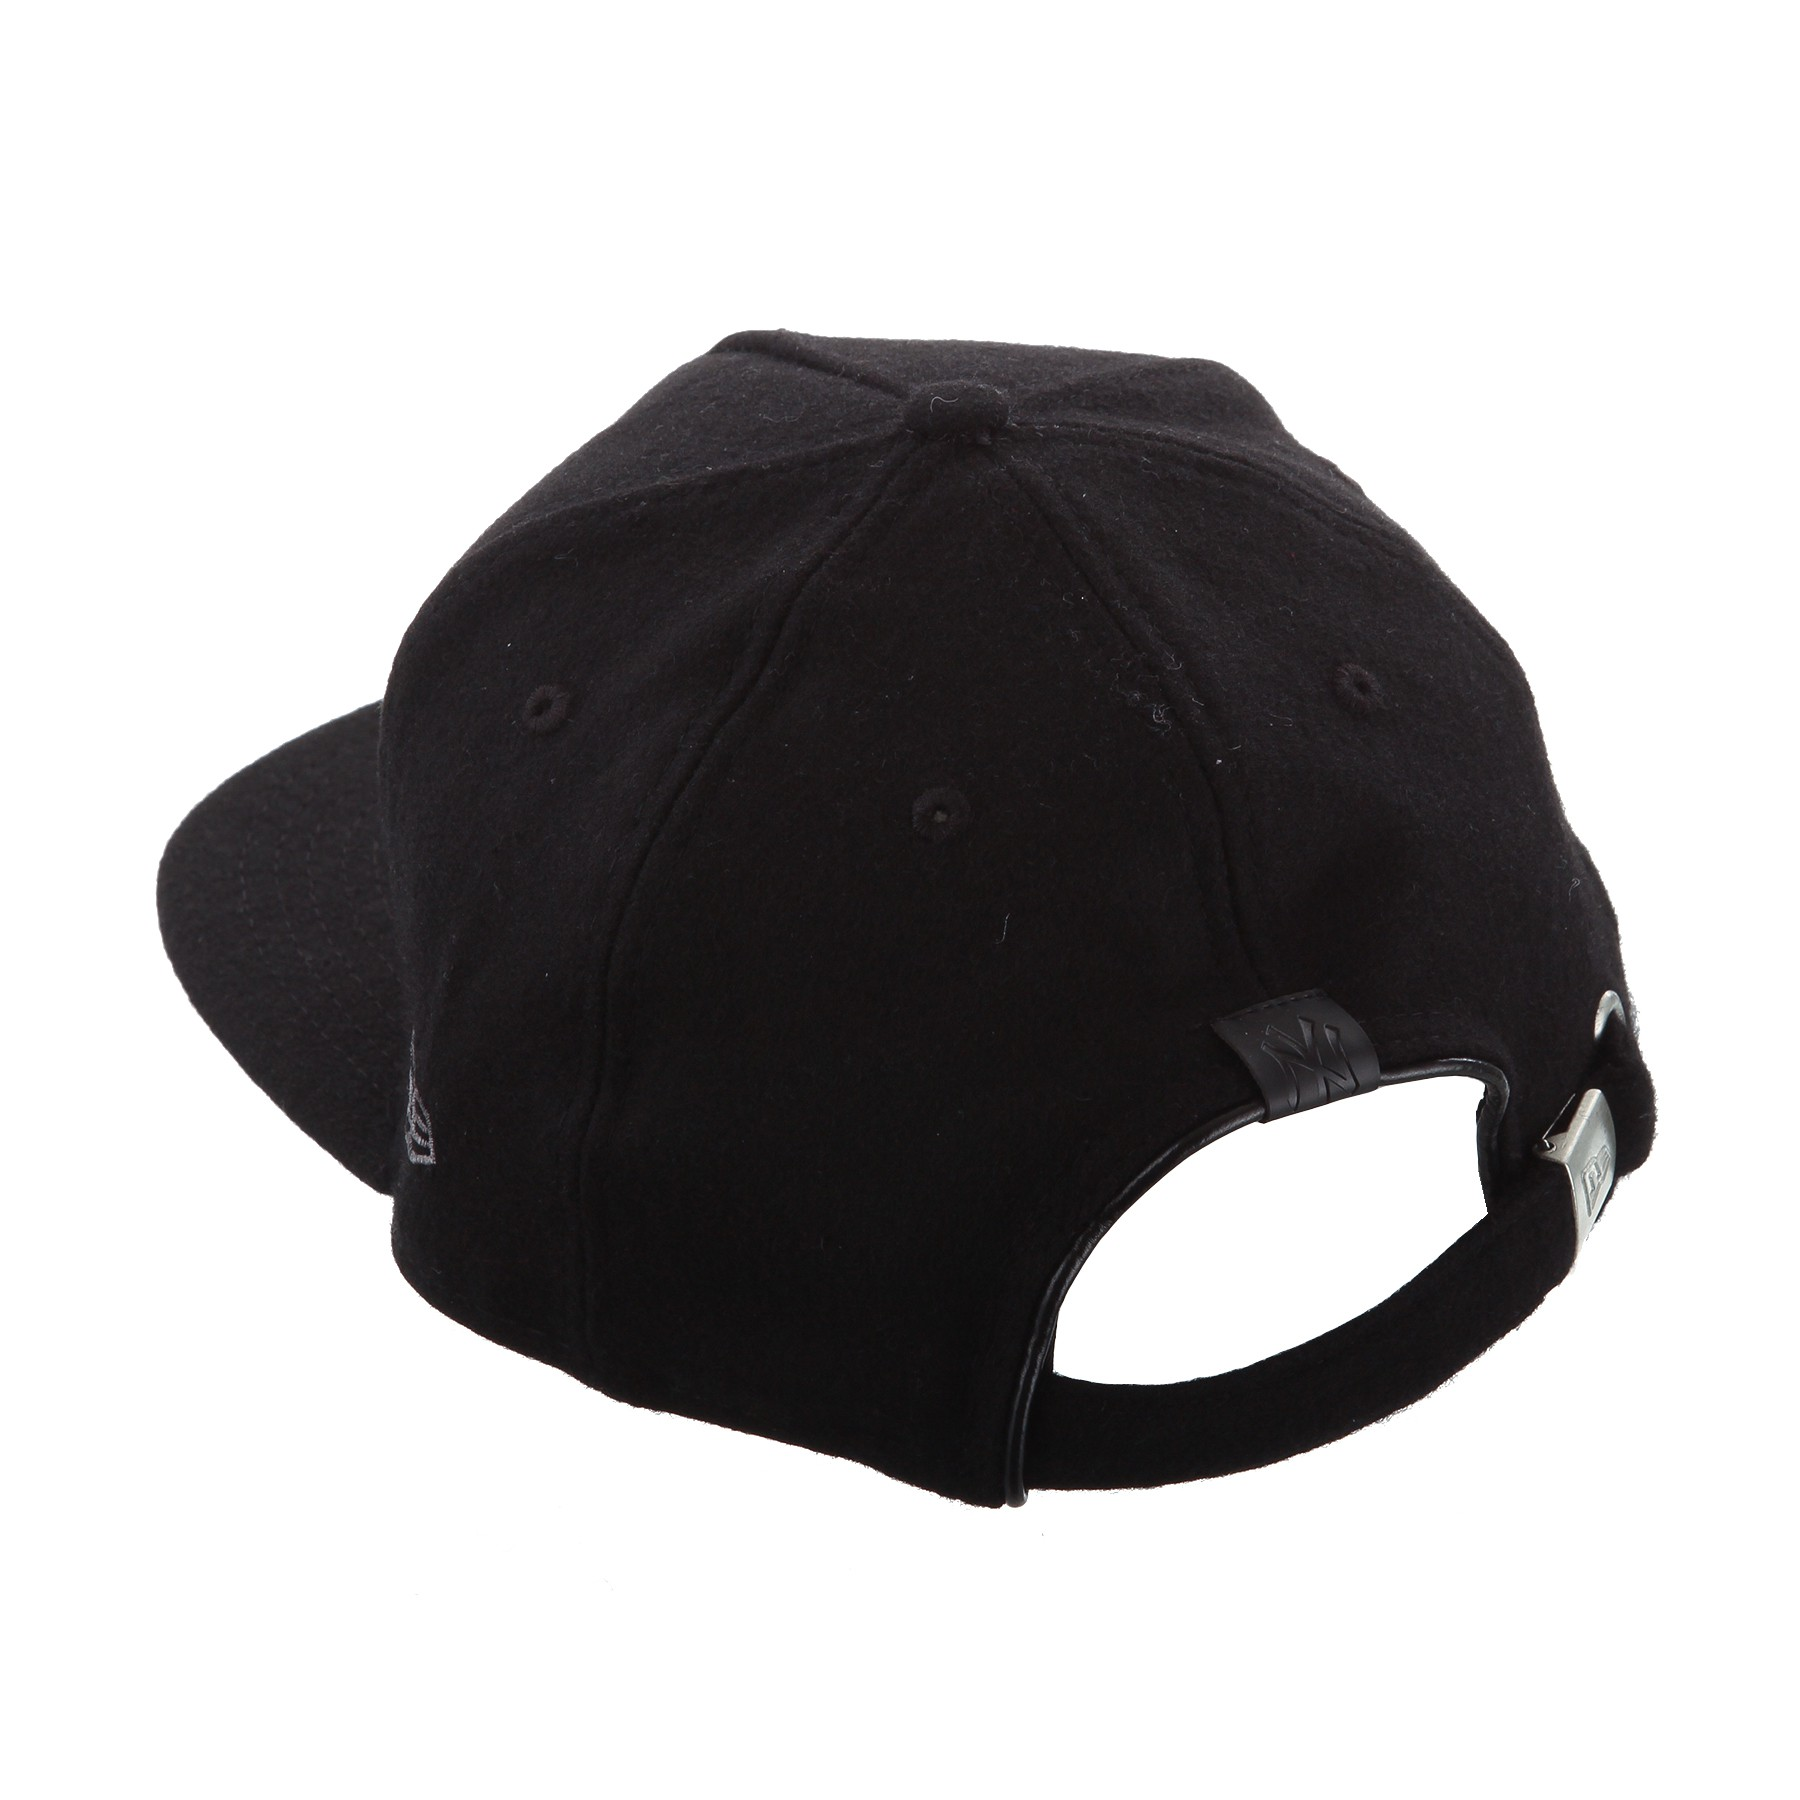 NEW ERA 9Fifty, Snapback Cap, schwarz  Bild https://cdn03.plentymarkets.com/zsy4vjx32p87/item/images/4960/full/80102195-BLACK-ama-02.JPG